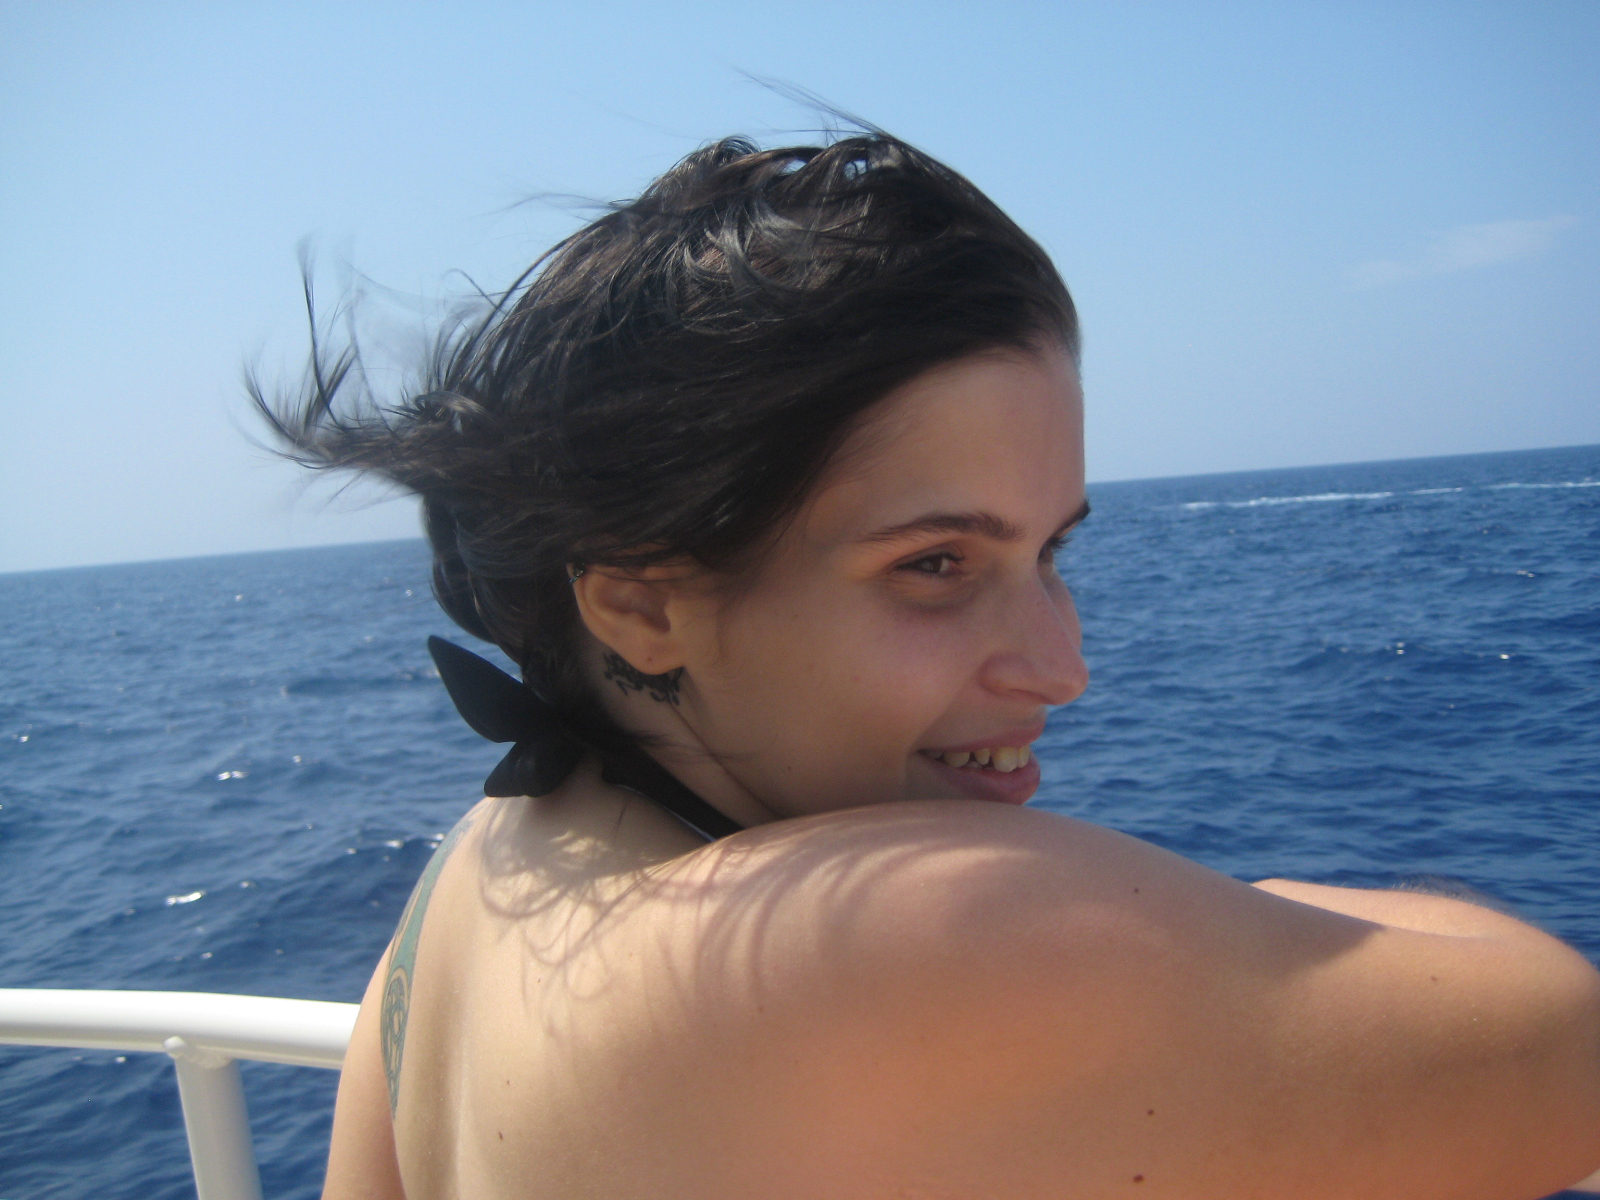 This is my grumpy and sunburned daughter as we returned to Keauhou Bay late this afternoon.